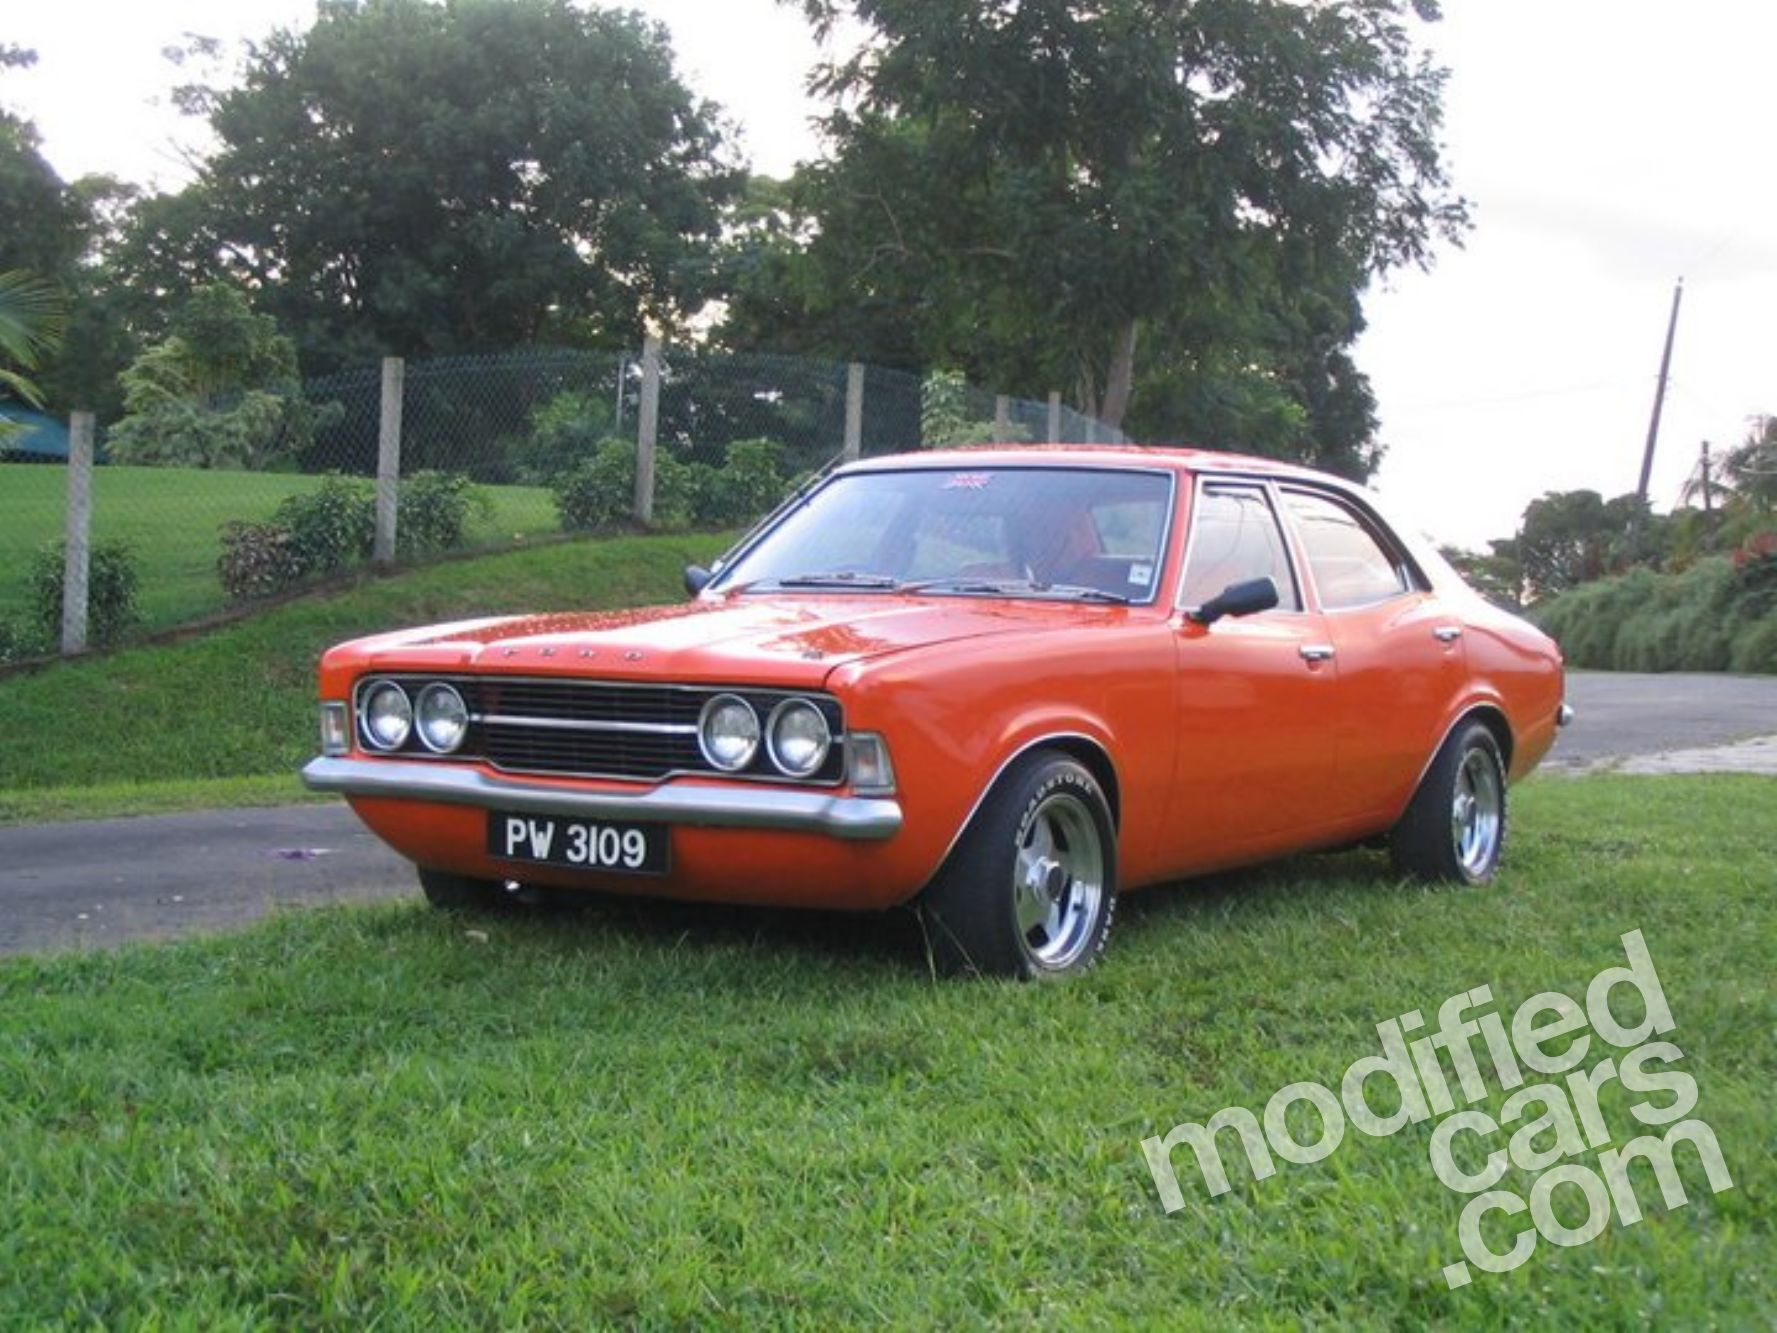 Modified Ford Mk3 Cortina Gt 2000 1969 Ford Ford Gt Classic Cars